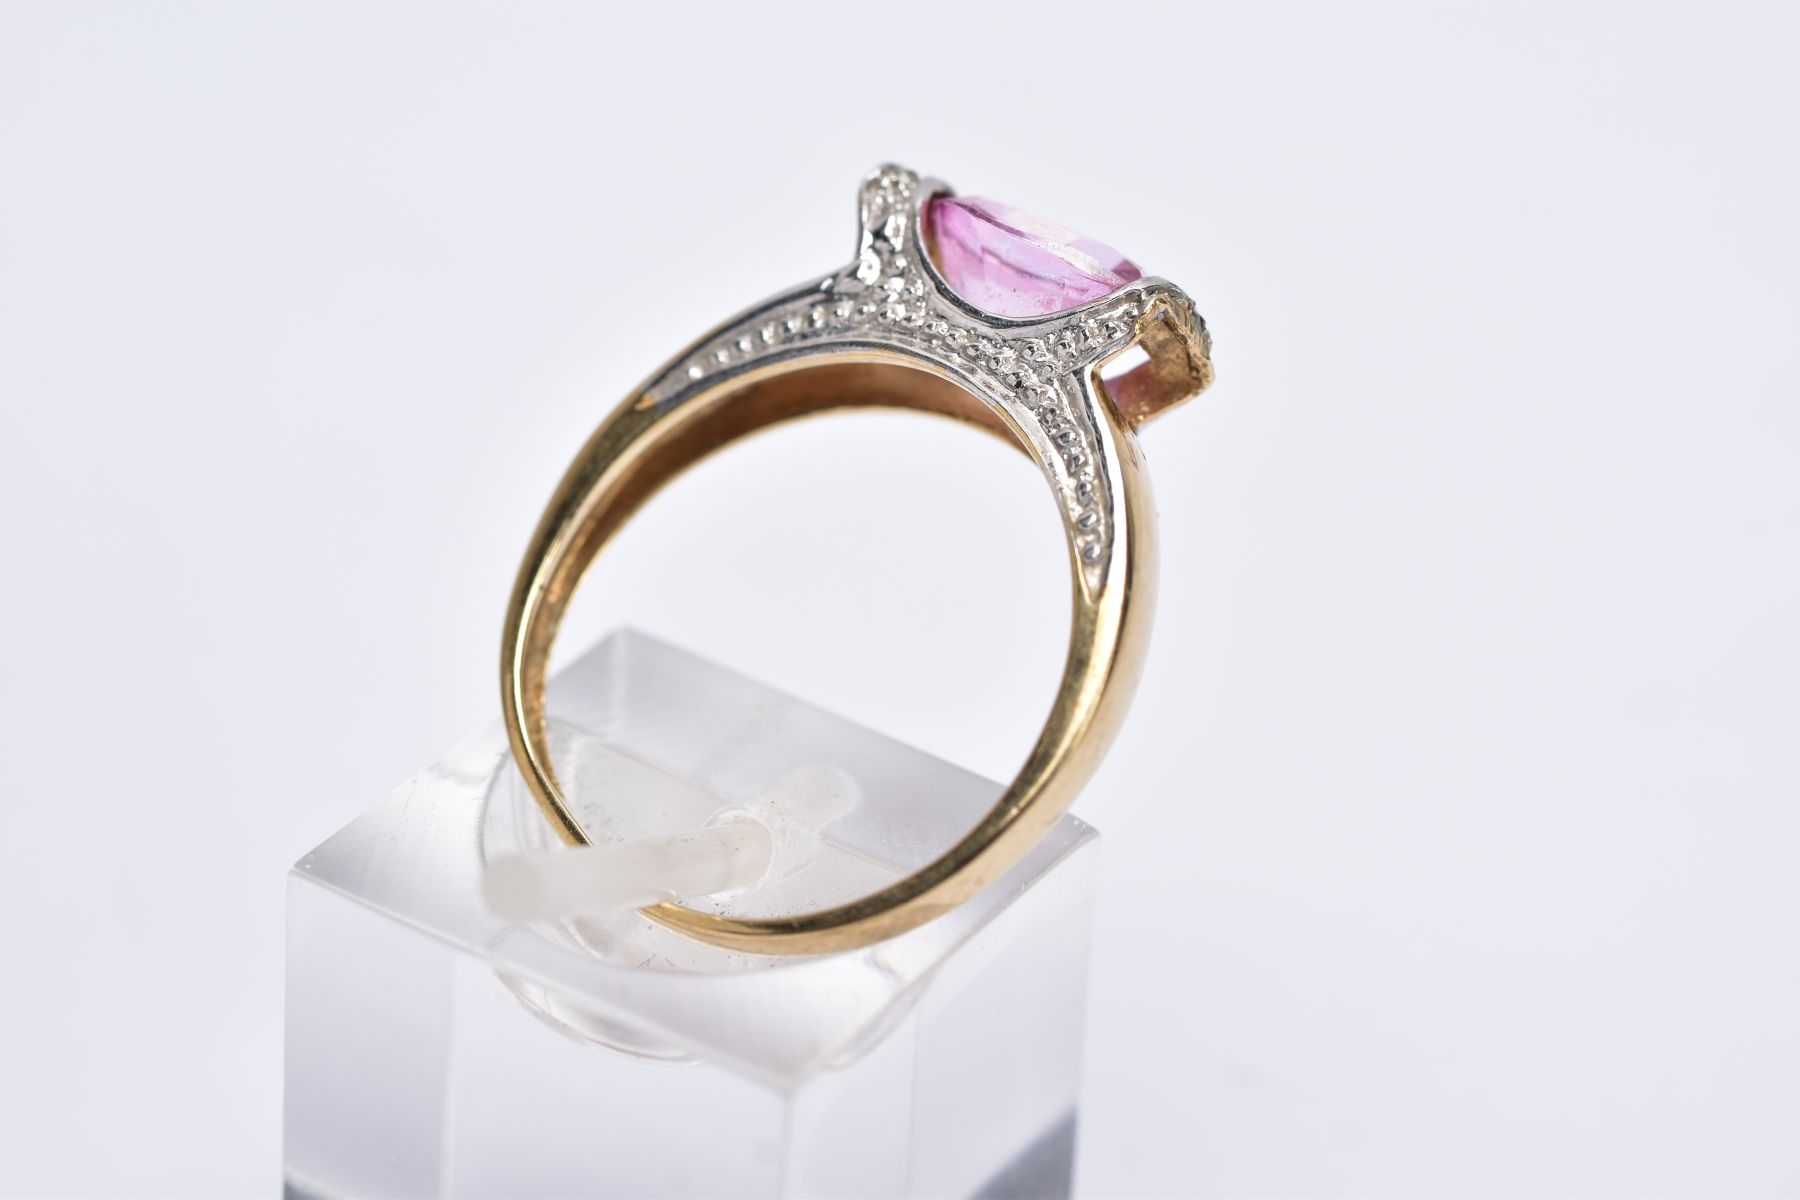 A 9CT GOLD PINK TOPAZ RING, designed with a tension set, oval cut pink topaz, single cut diamond - Image 4 of 5